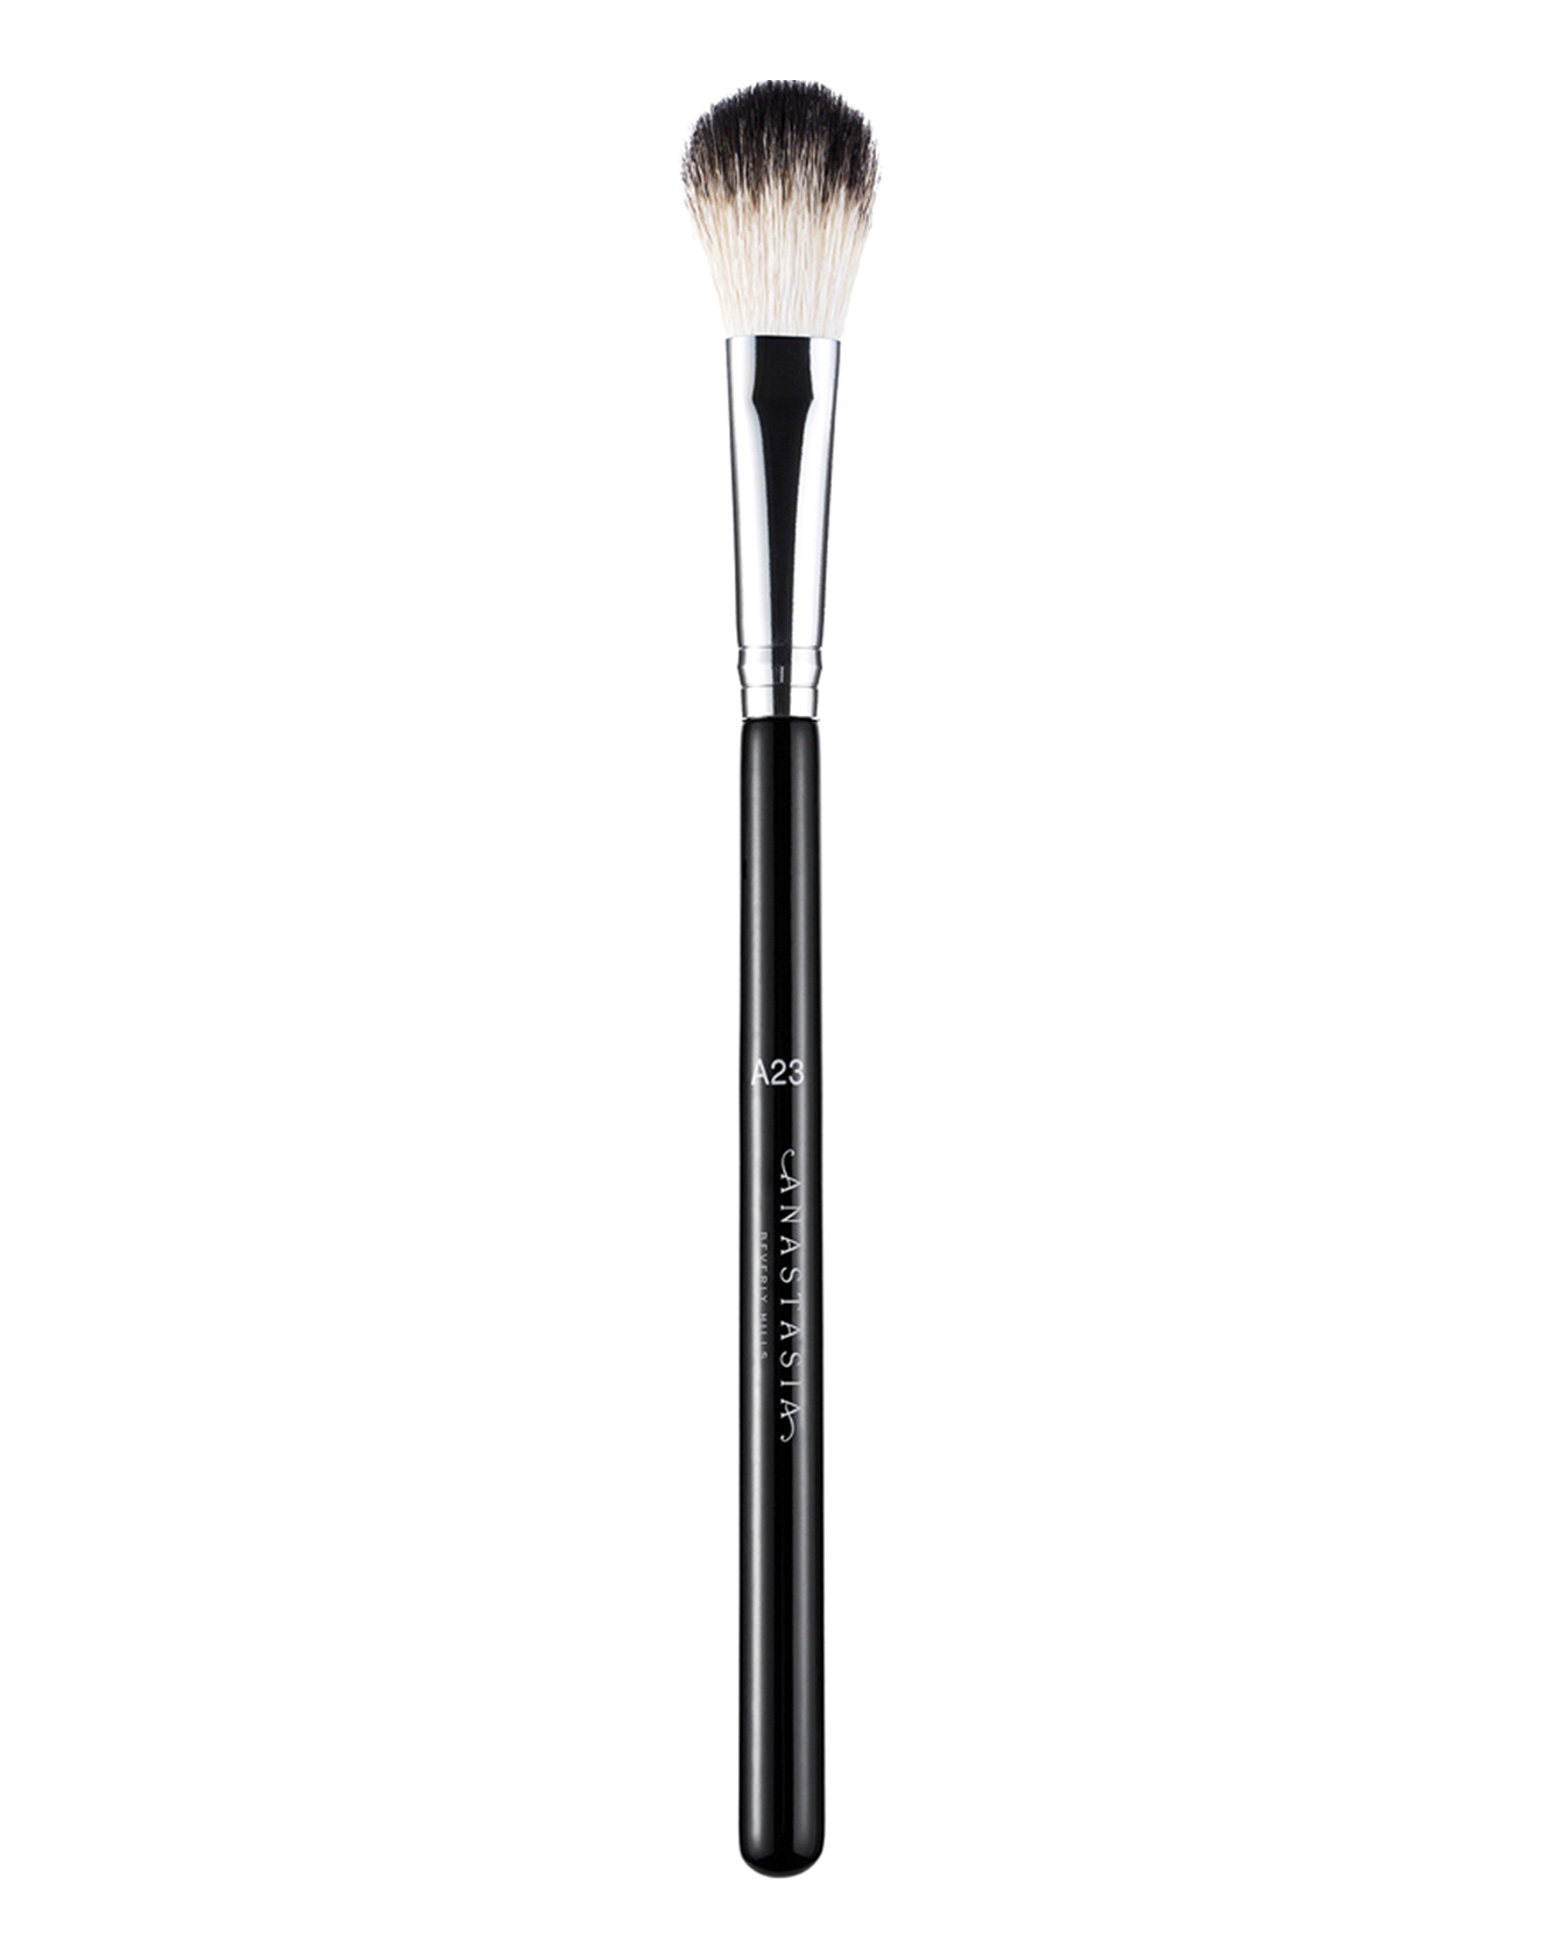 A23 highlighter brush